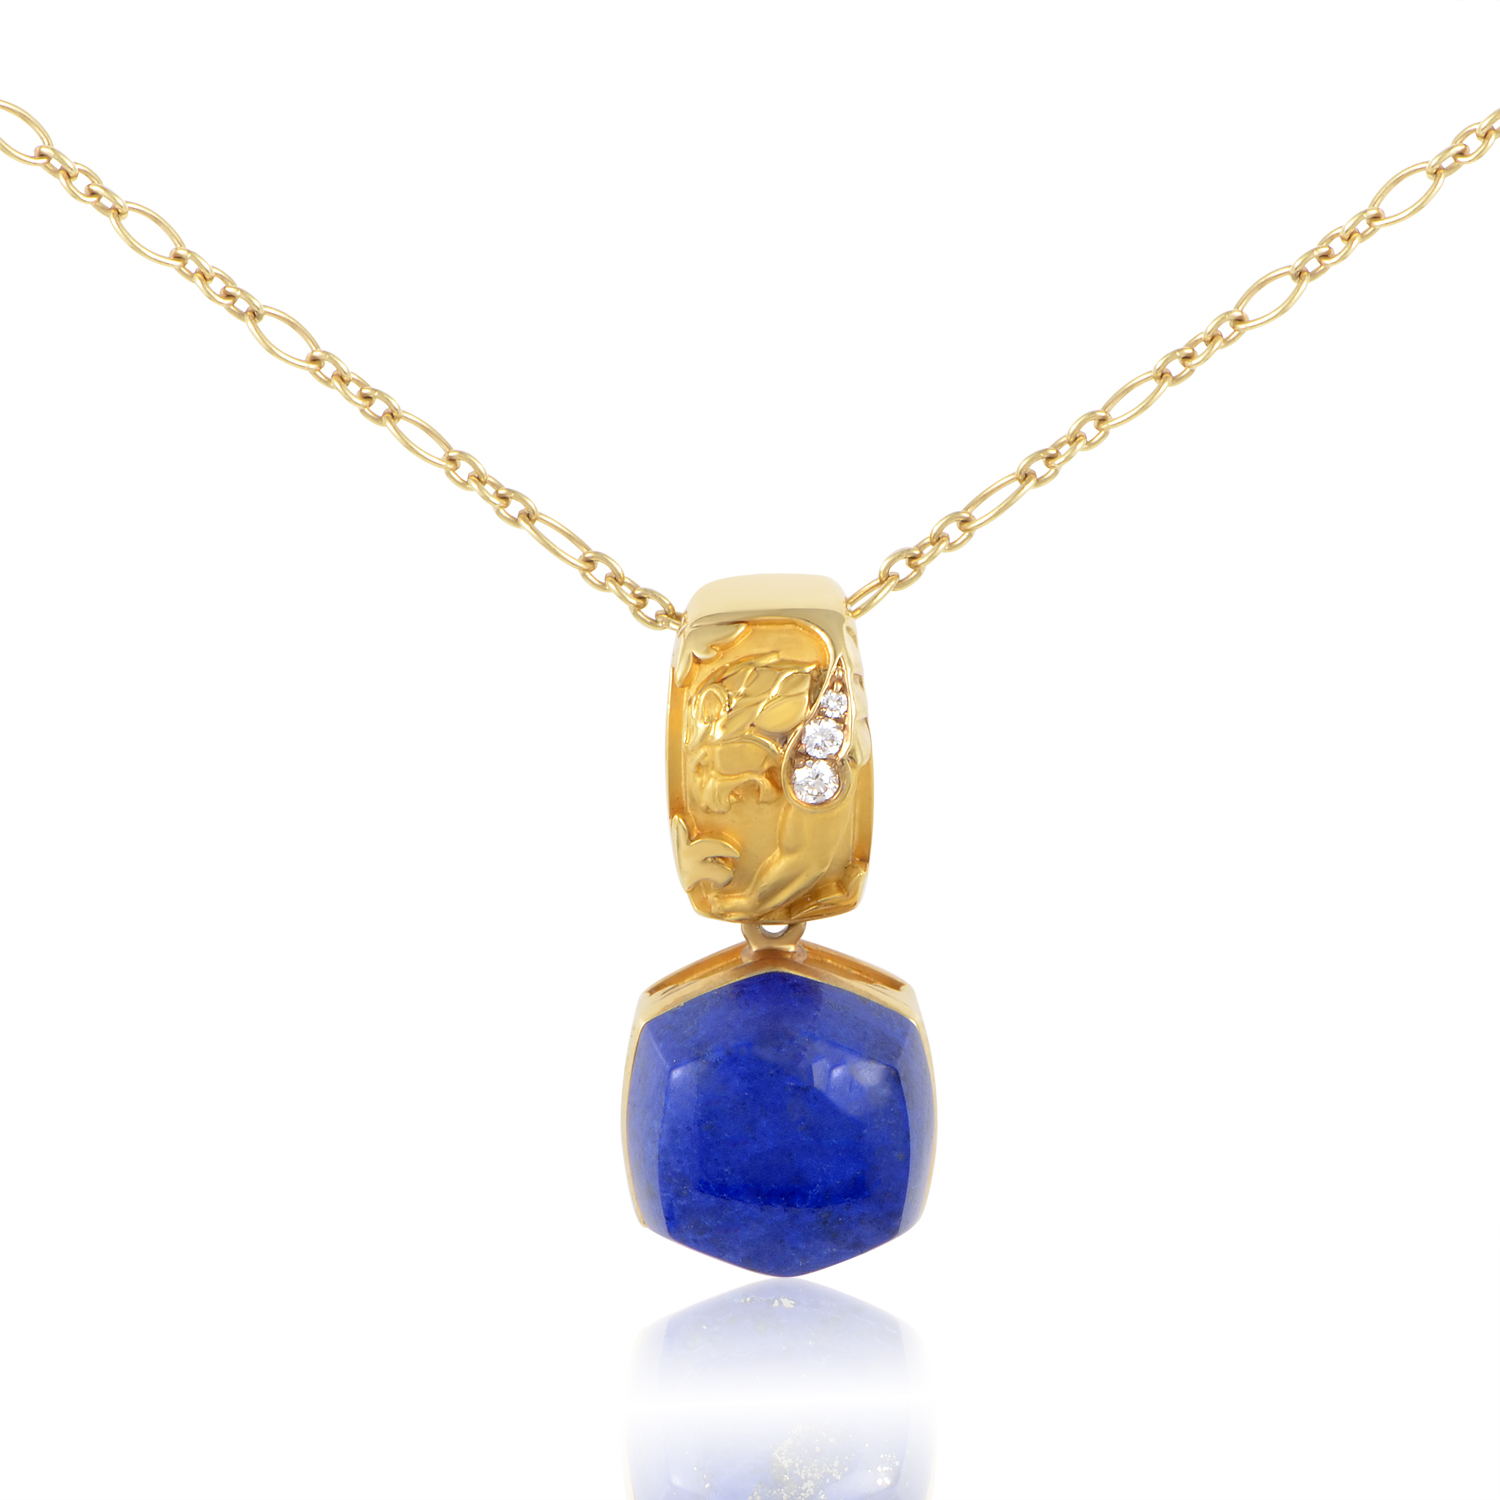 Babylon Caramelo 18K Yellow Gold Diamond & Lapis Lazuli Pendant Necklace